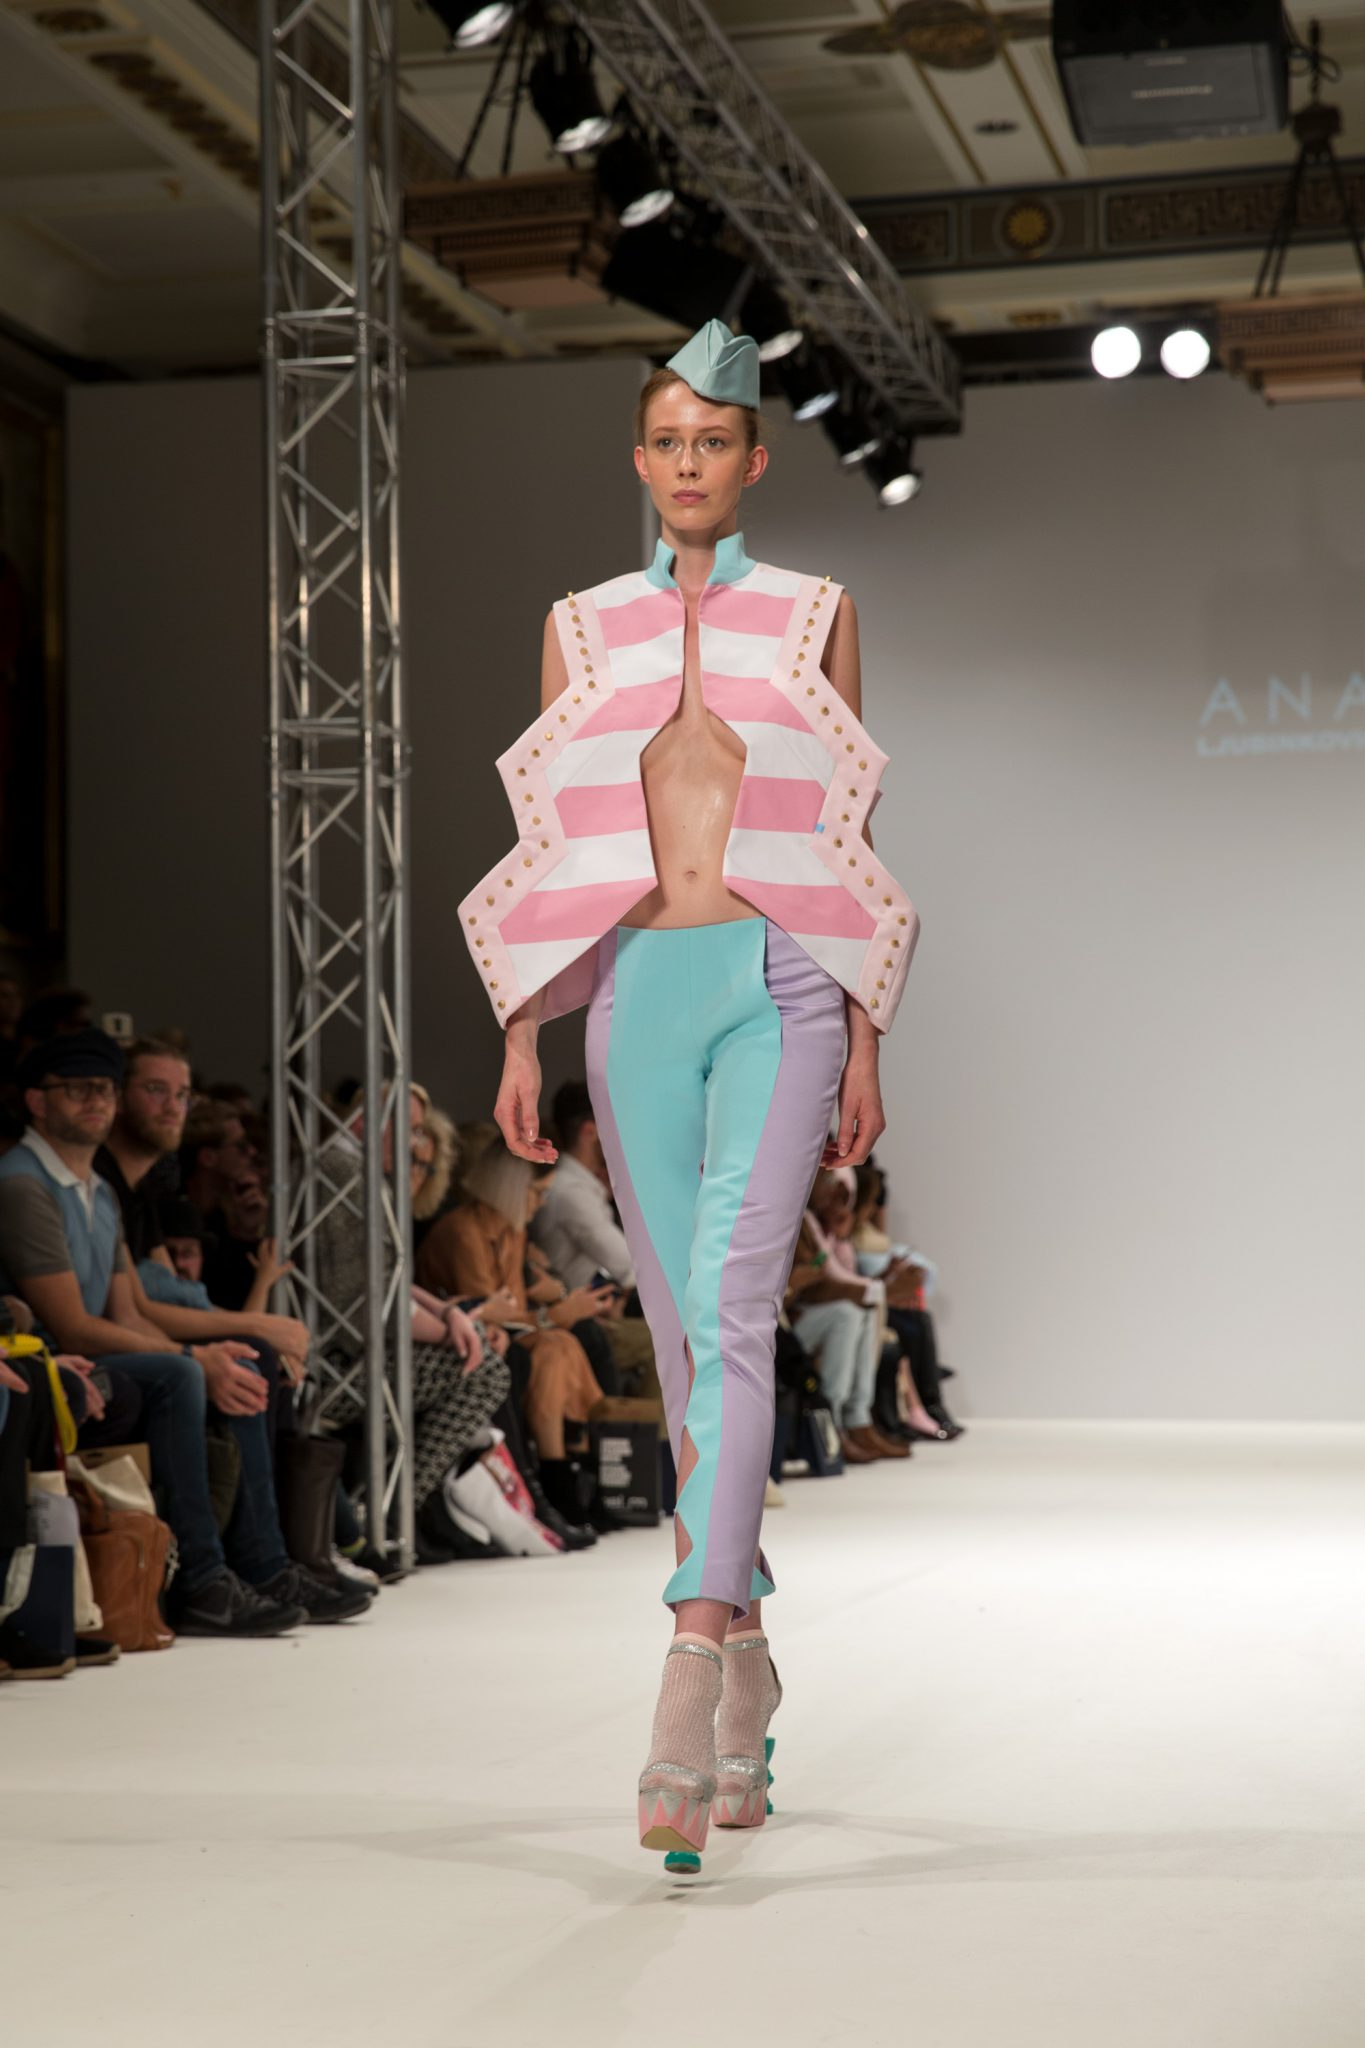 ana-ljubinkovic_lfw_jungle6